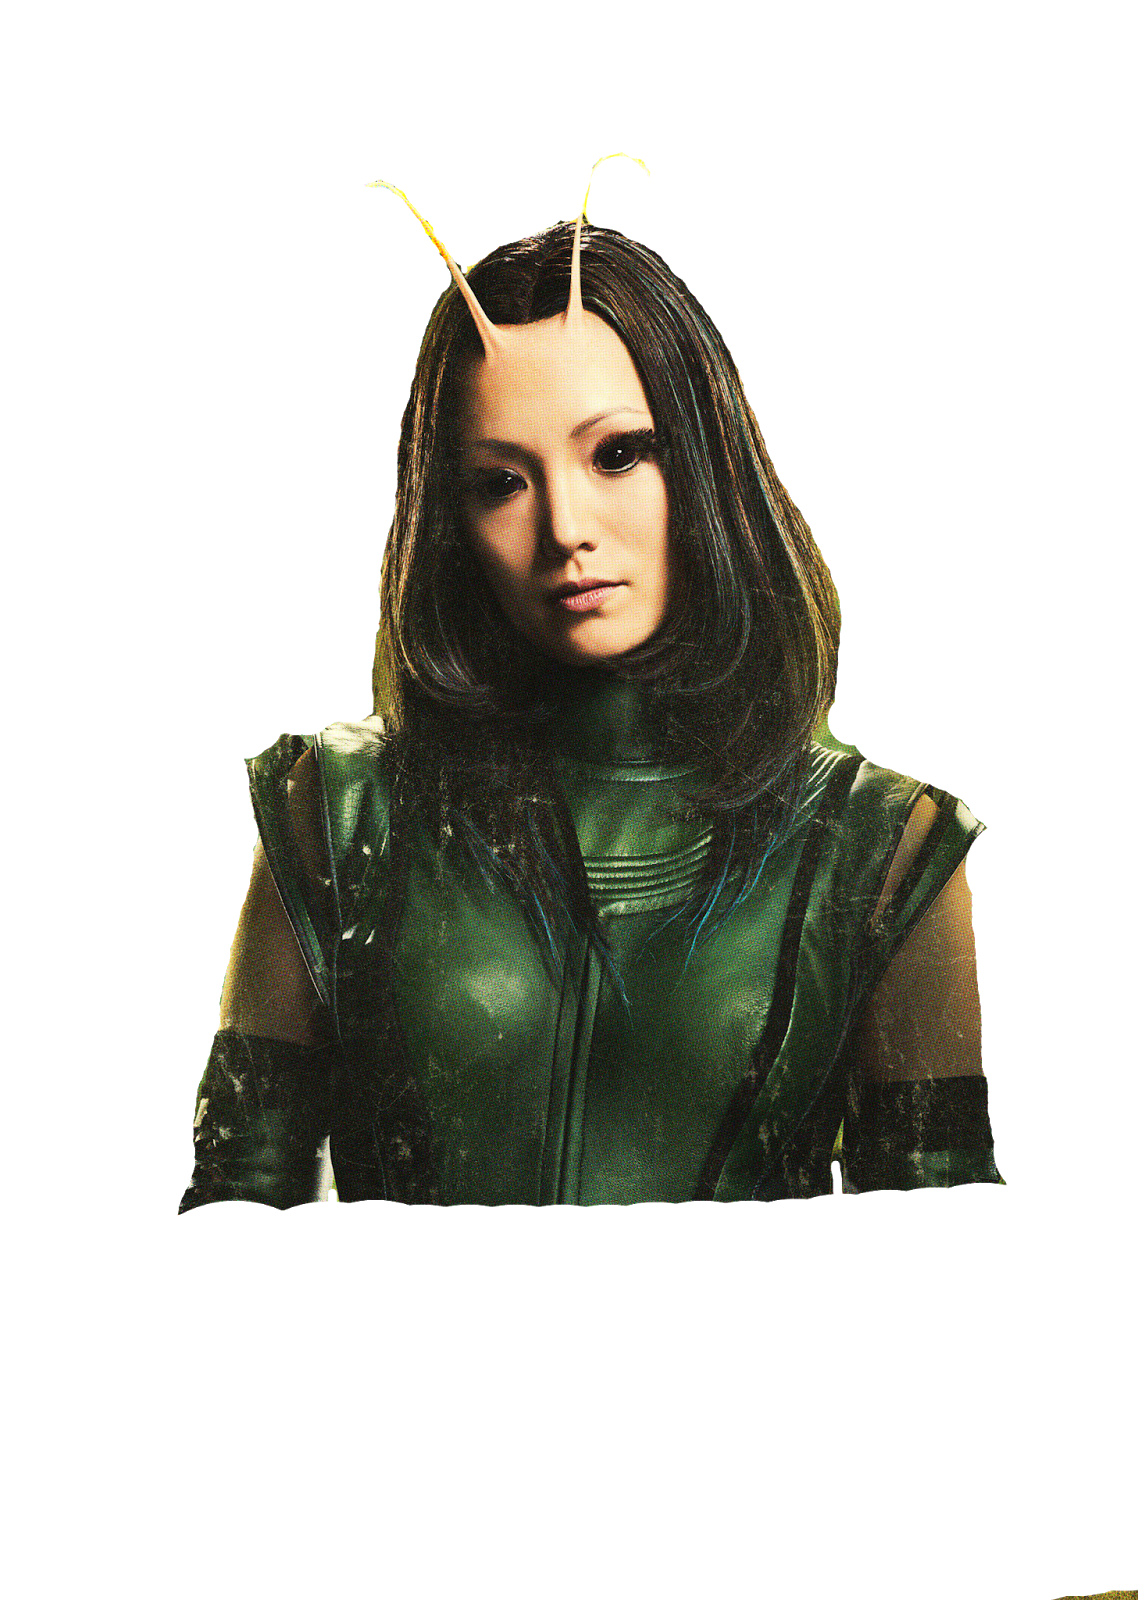 Marvel mantis png. Guardians of the galaxy